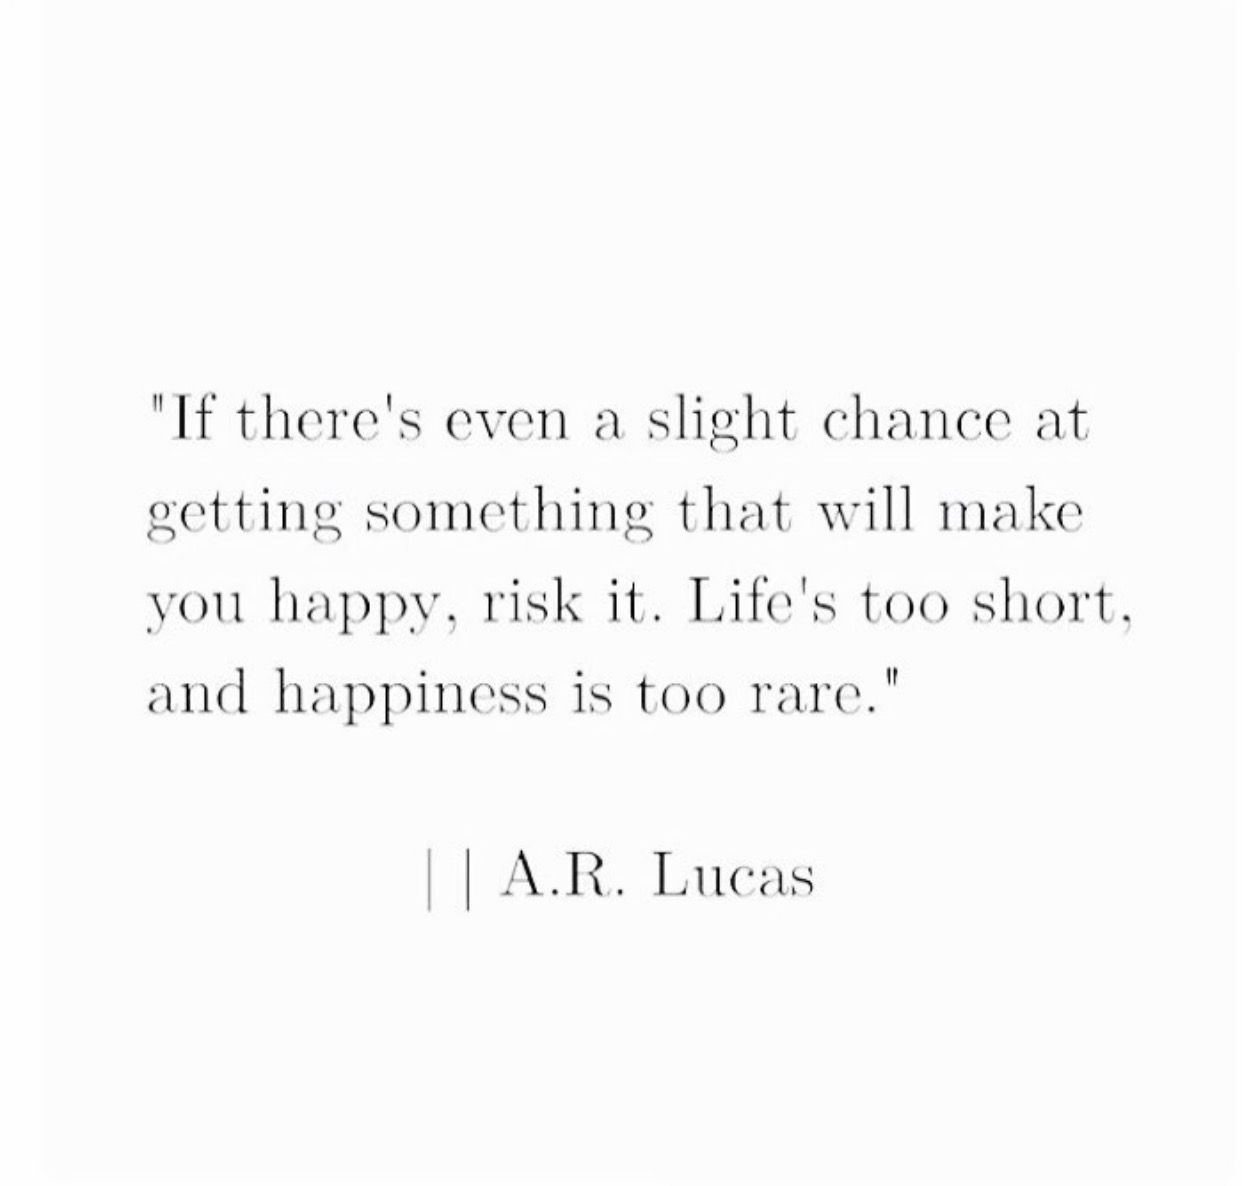 Lifes Too Short Quotes If There's Even A Slight Chance At Getting Something That Will